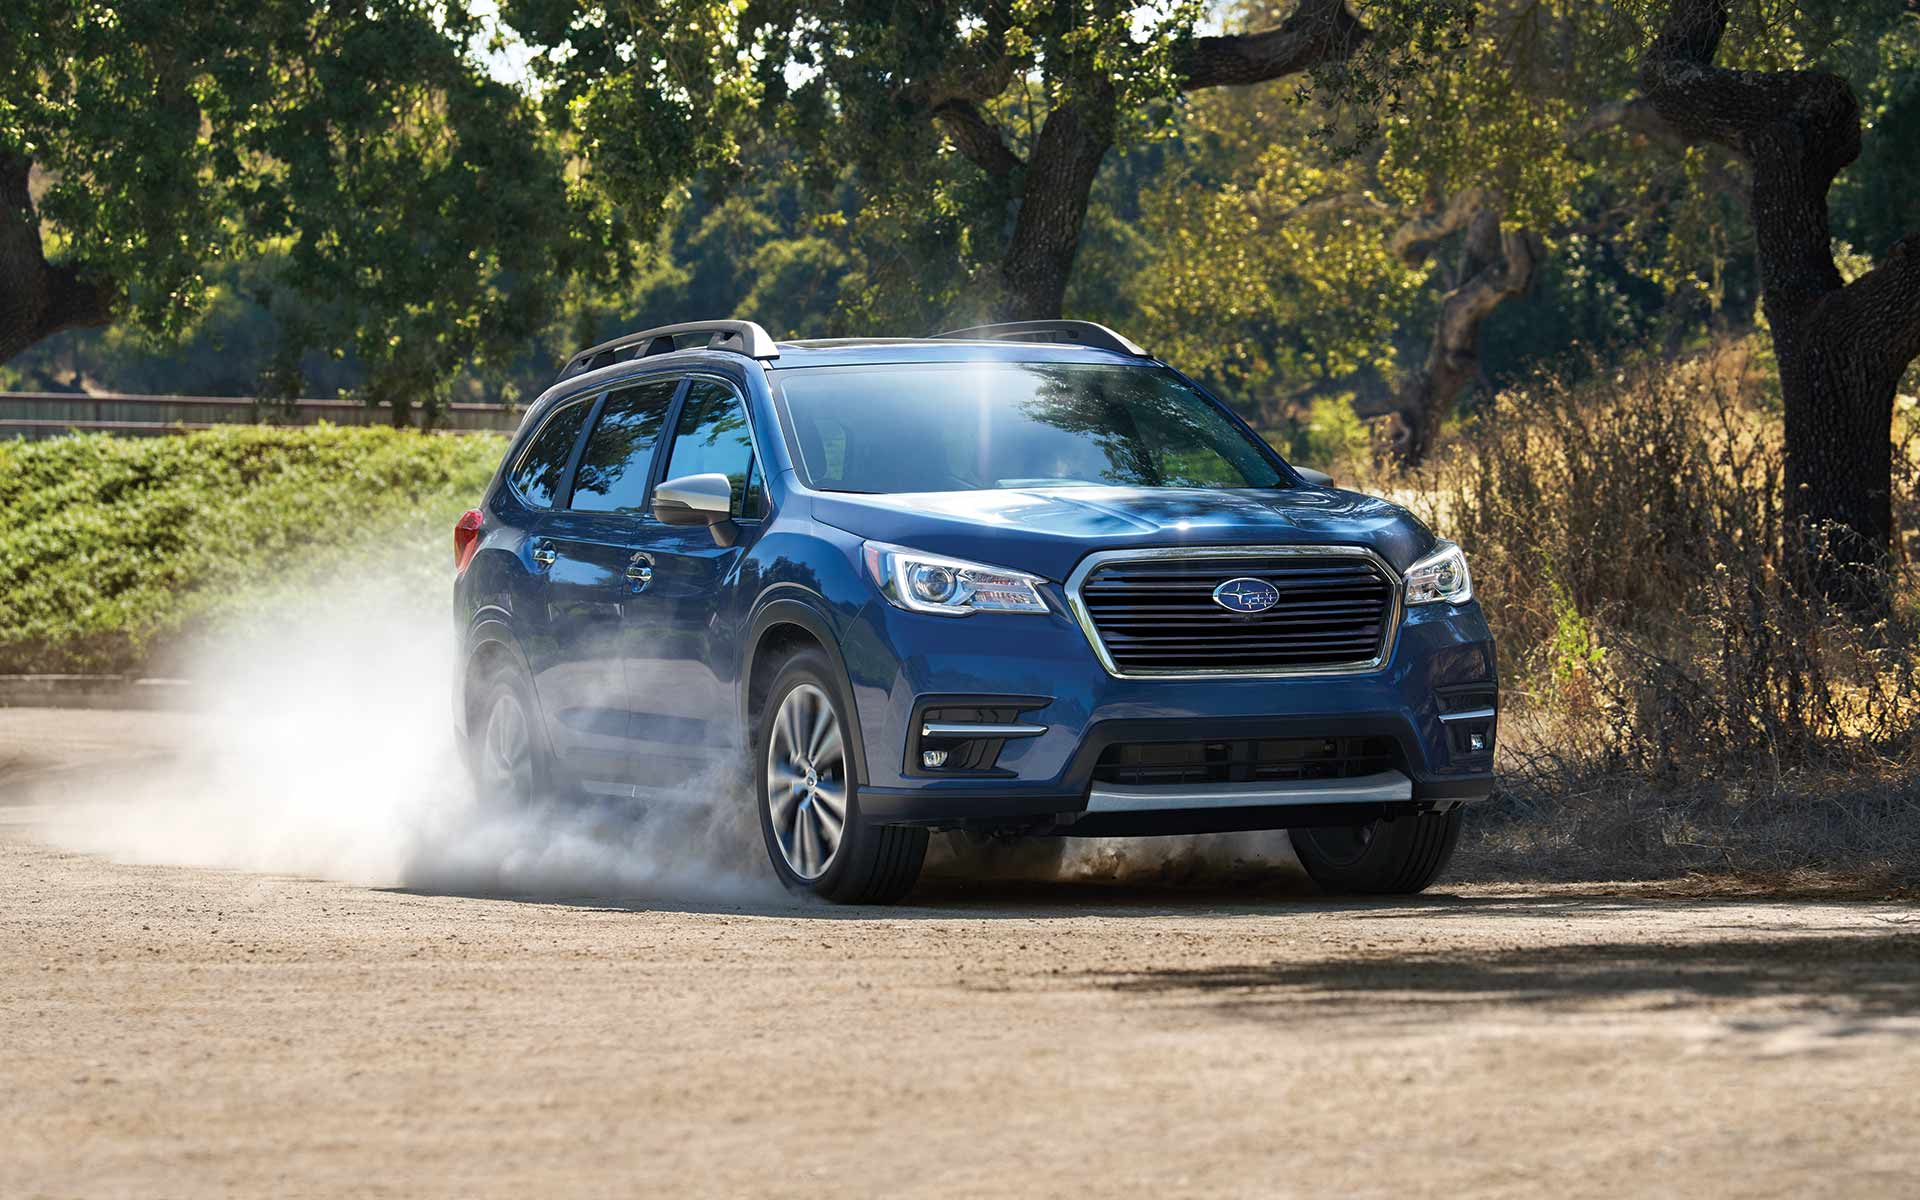 Michigan Review - 2019 Subaru Ascent SUV